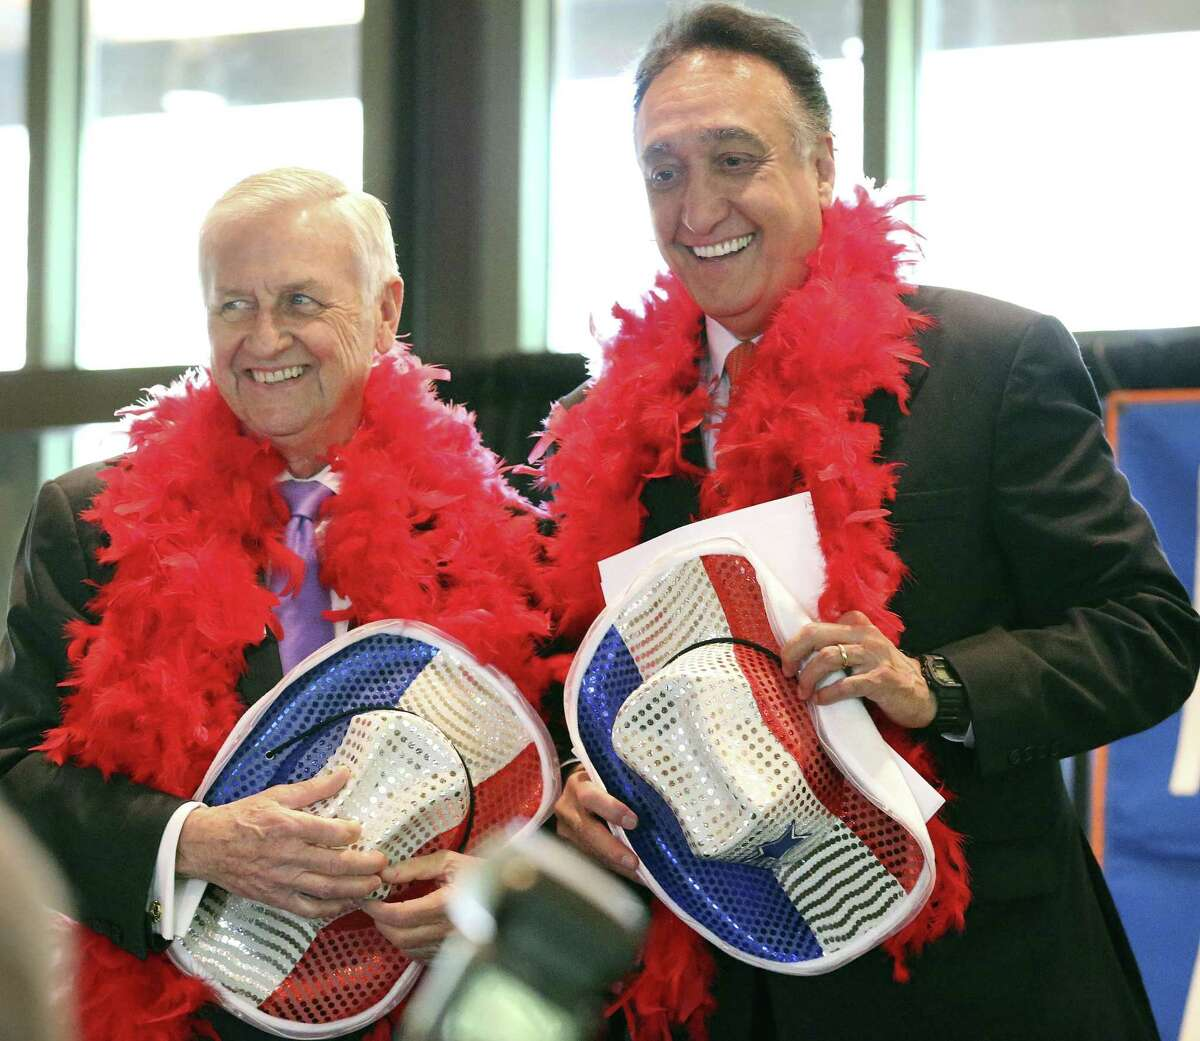 Emcees John Montford and Henry Cisneros are asked to wear special attire for their appearance at a luncheon for the Greater San Antonio After-School All-Stars program at the Briscoe Western Art Museum on April 4, 2018.